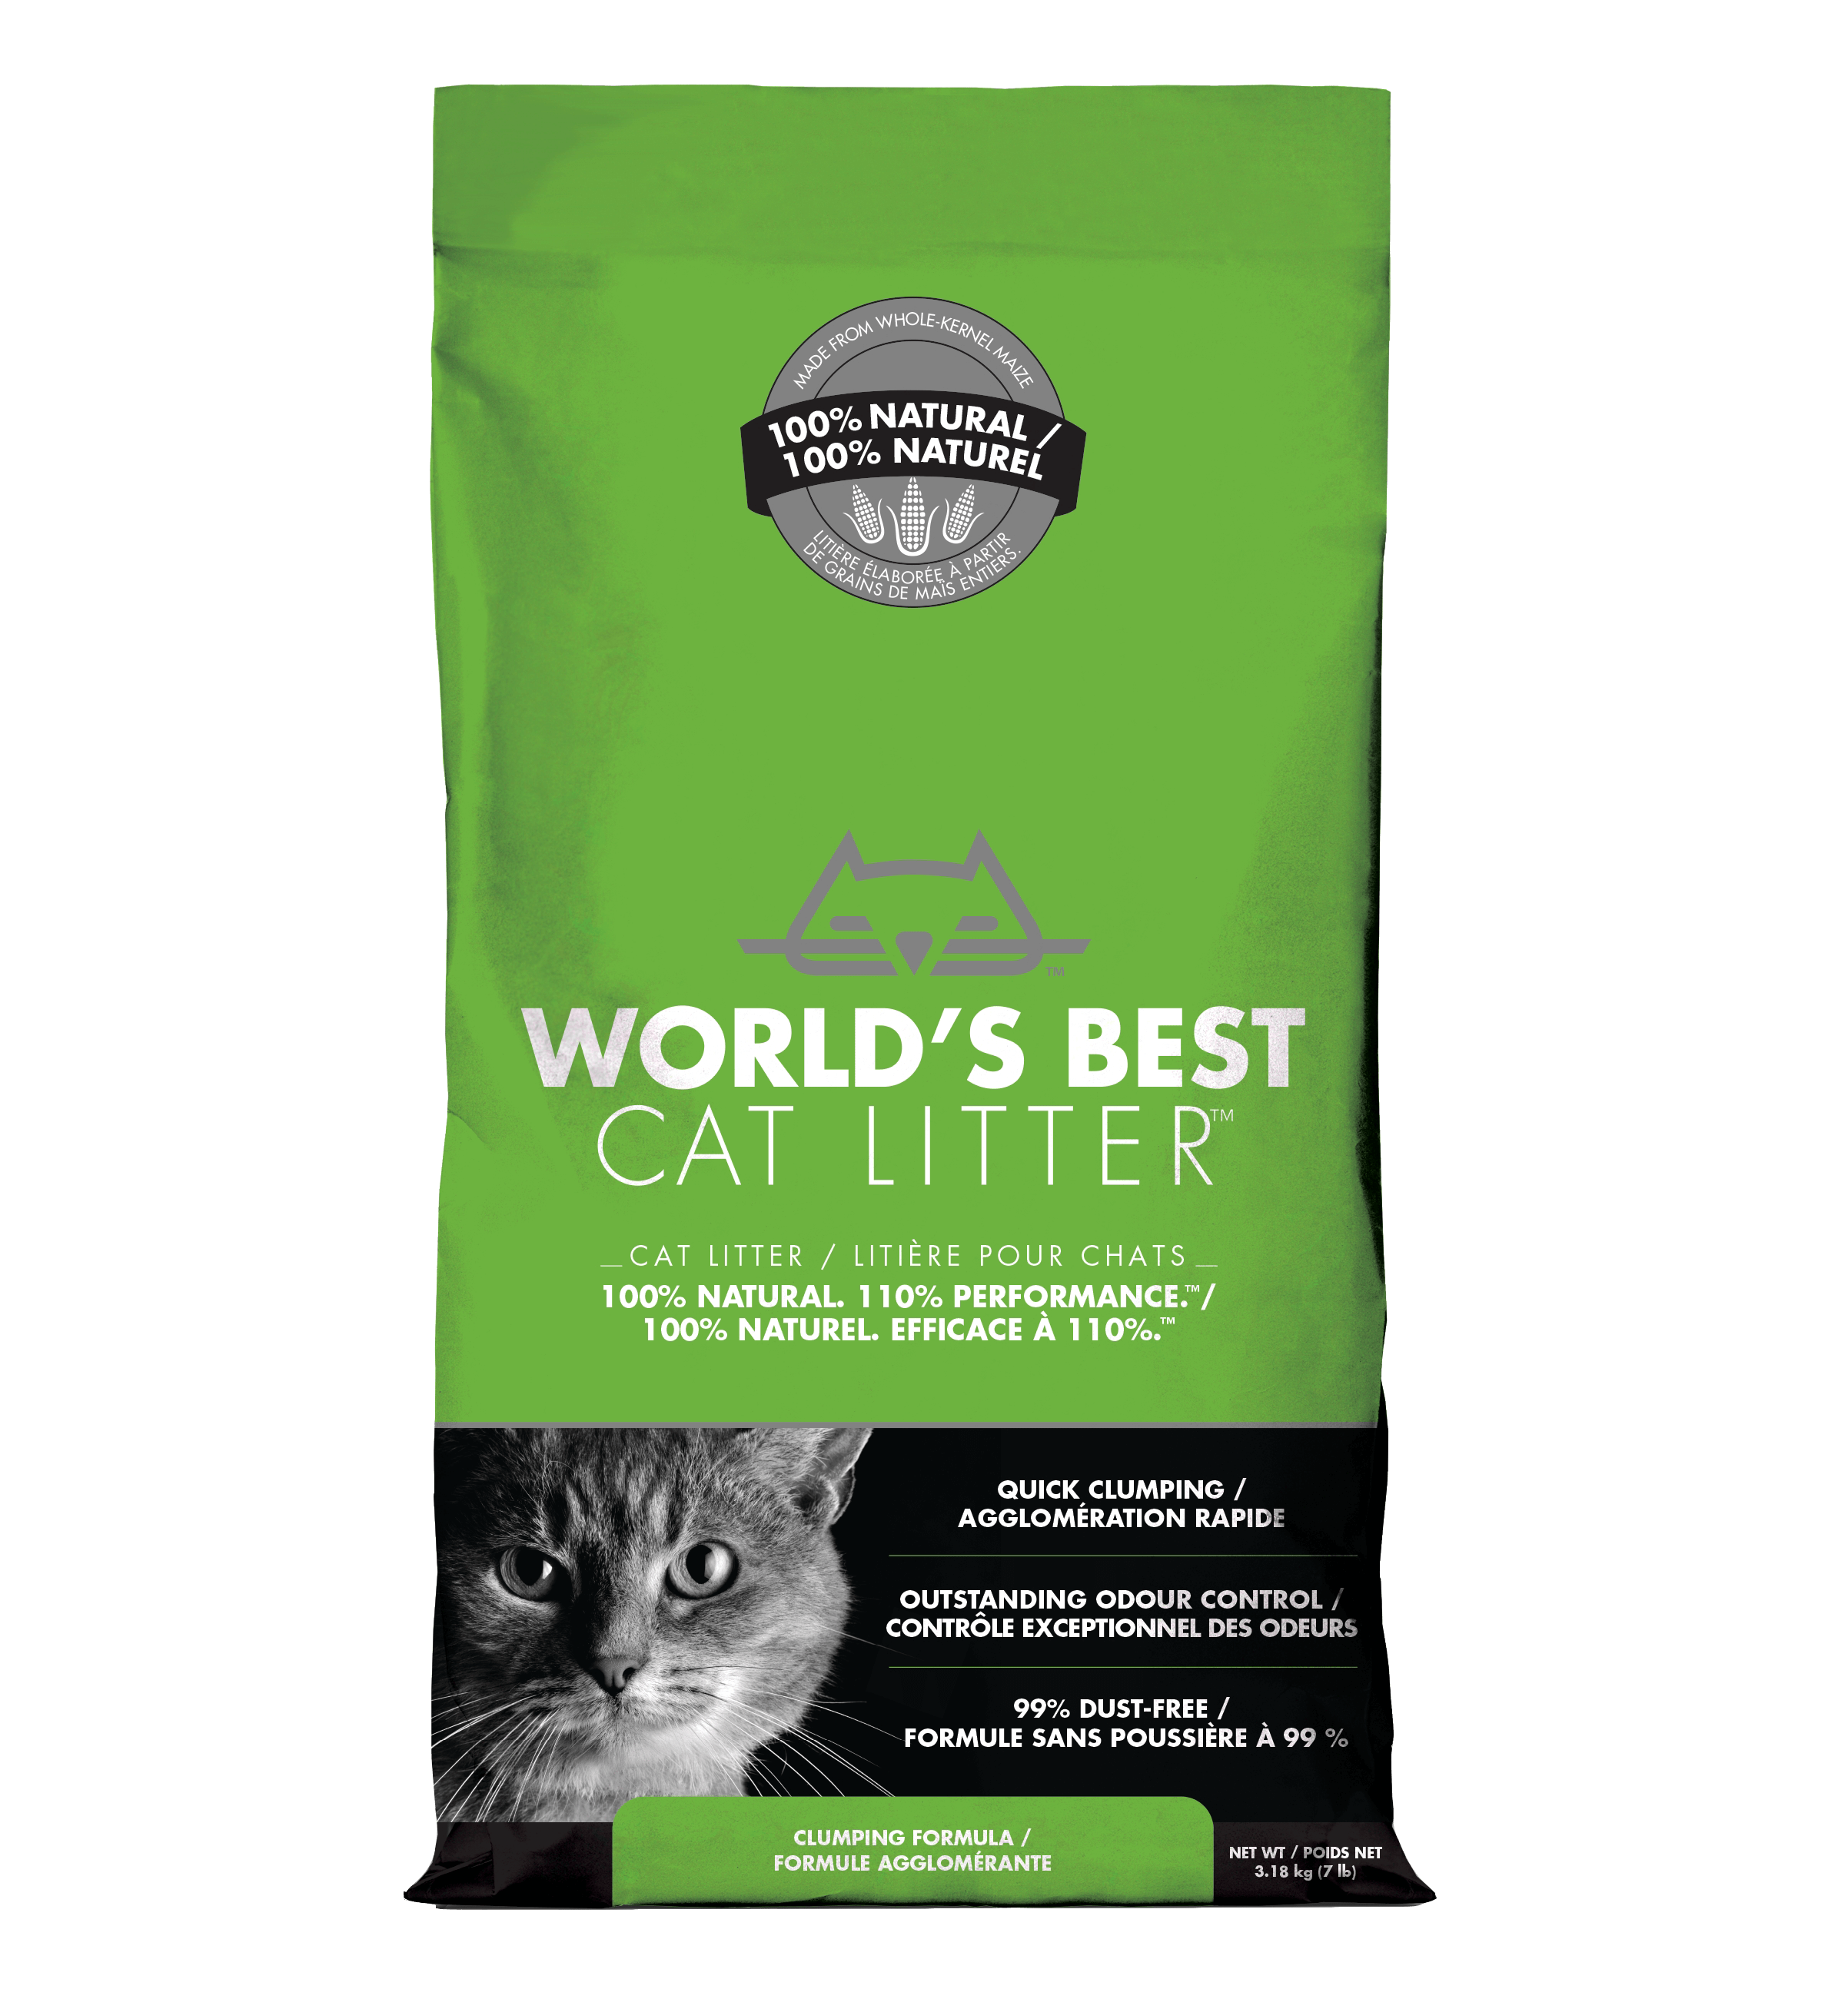 World's Best Cat Litter - Clumping Formula | 3.18kg - Click to enlarge picture.